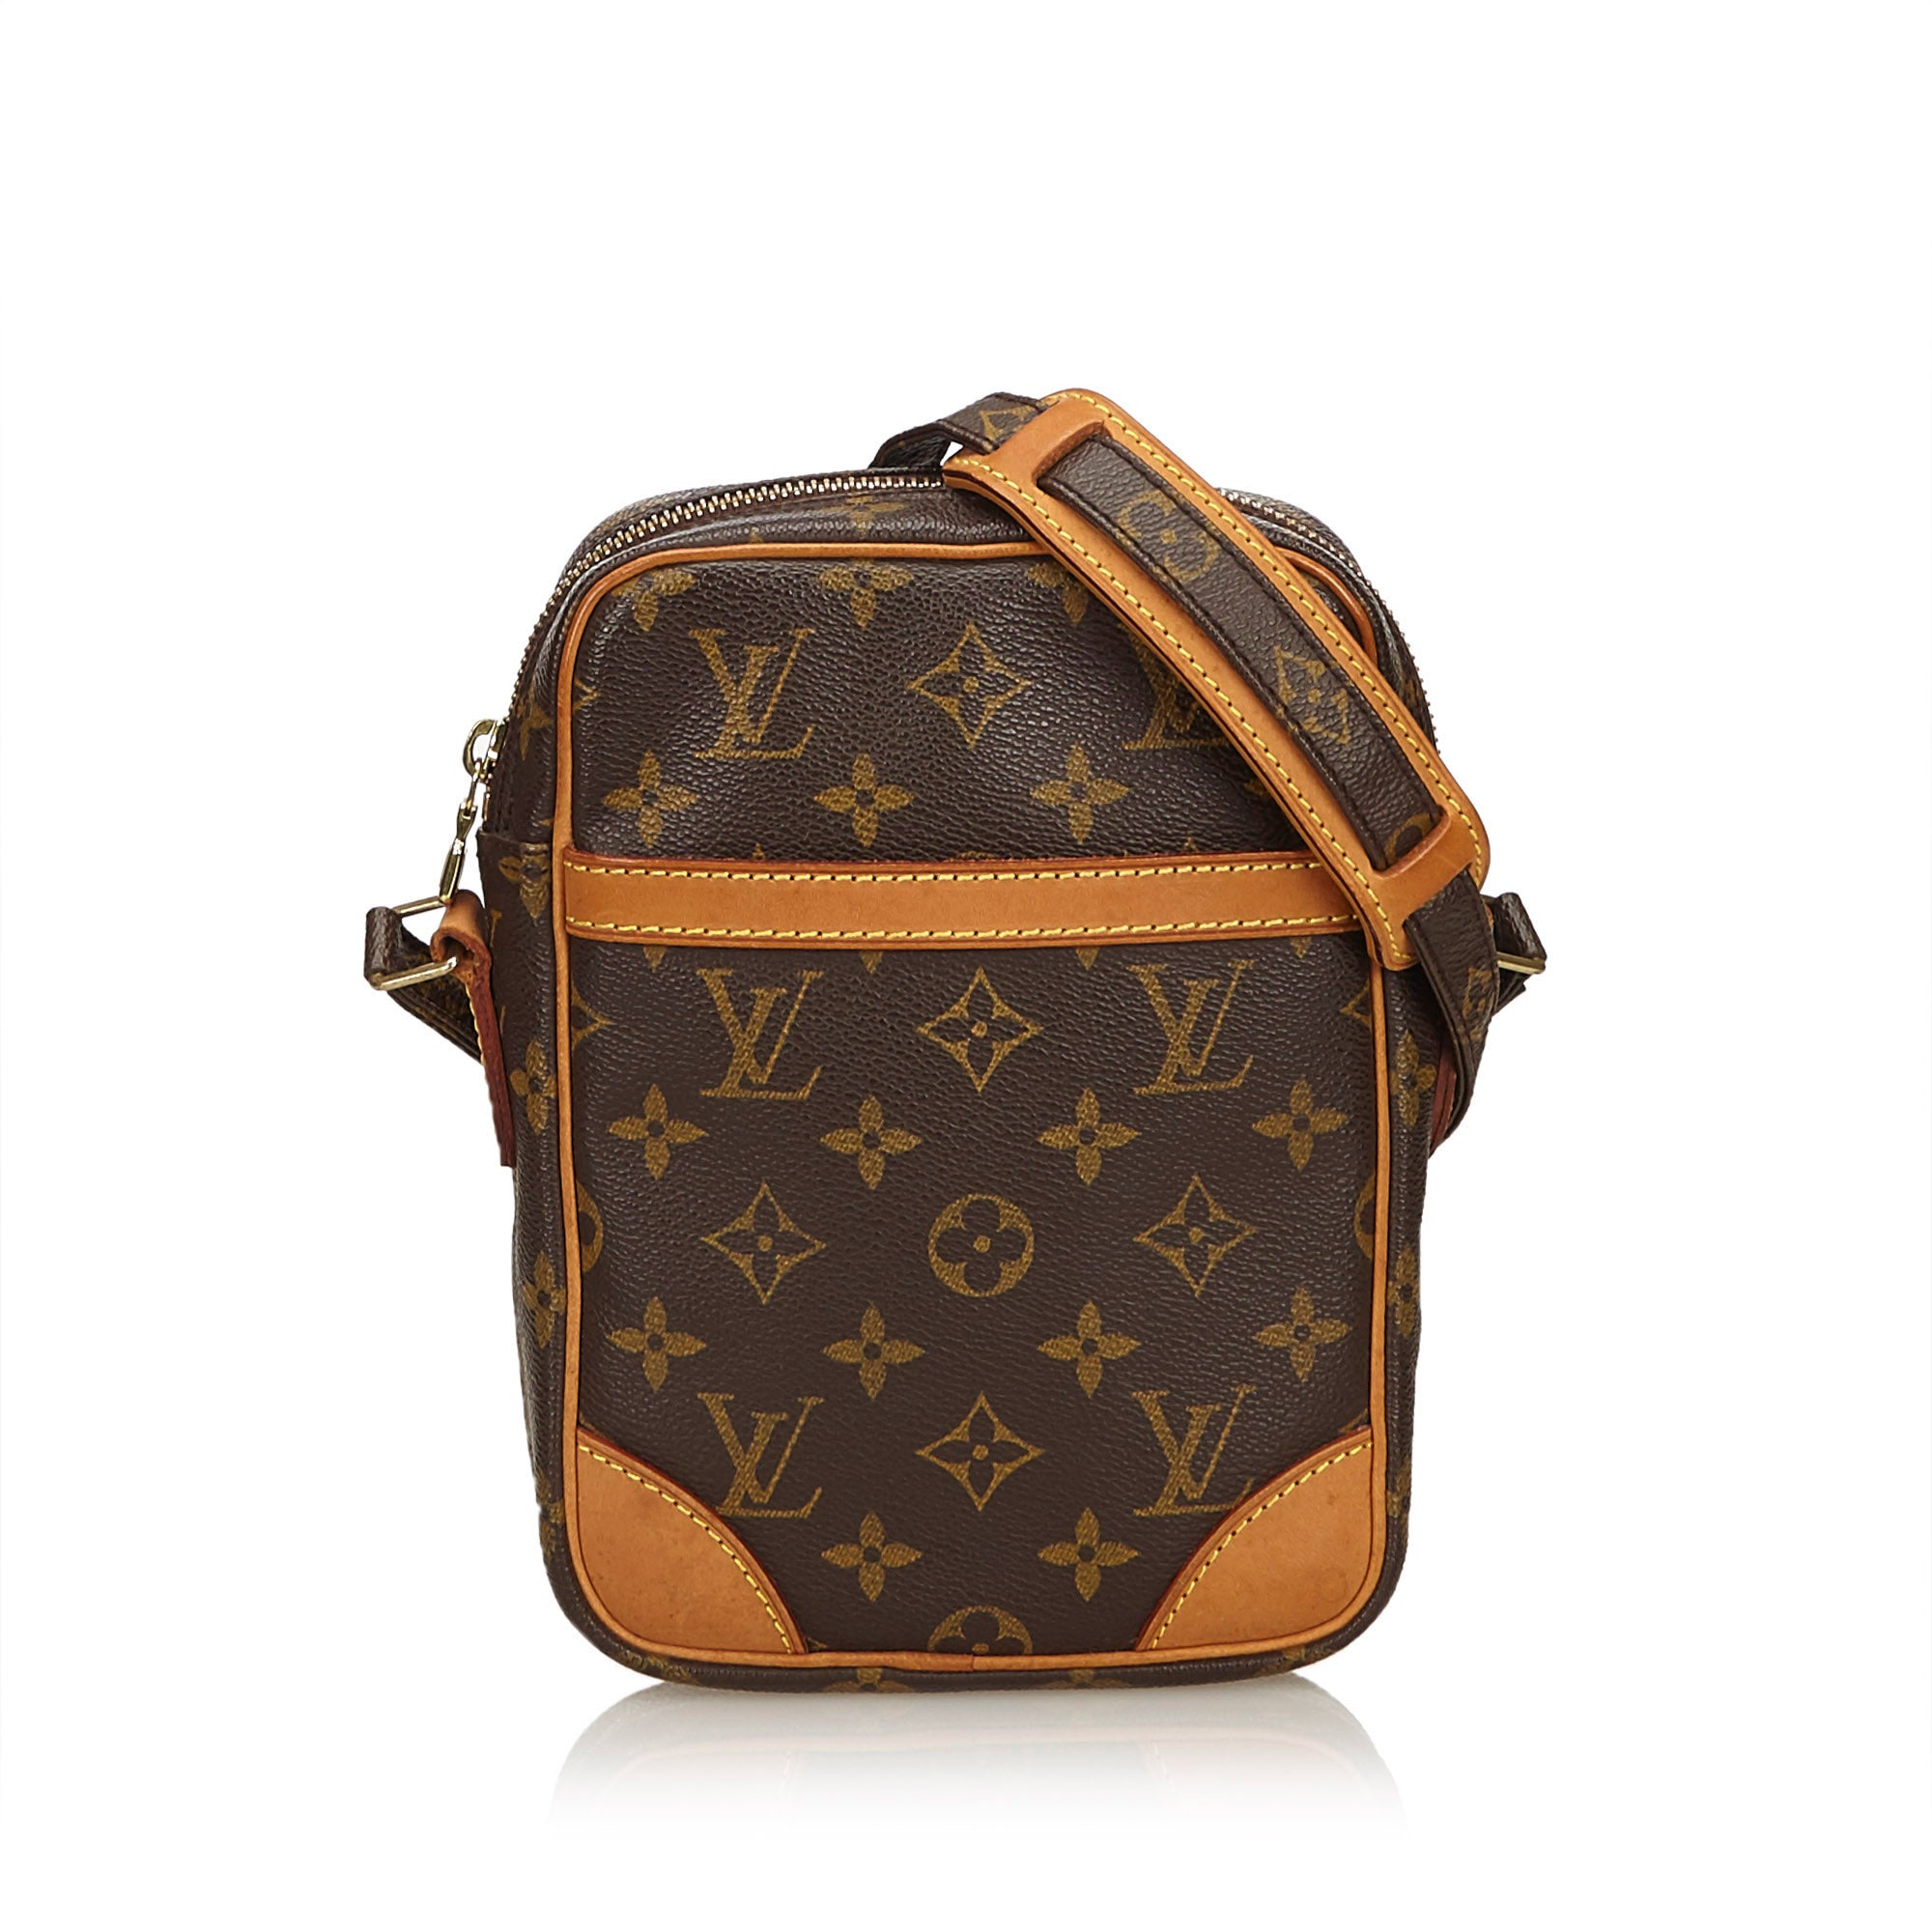 55c39049cdafd LOUIS VUITTON MONOGRAM DANUBE CROSSBODY BAG Shop the best value on  authentic designer used preowned consignment ...